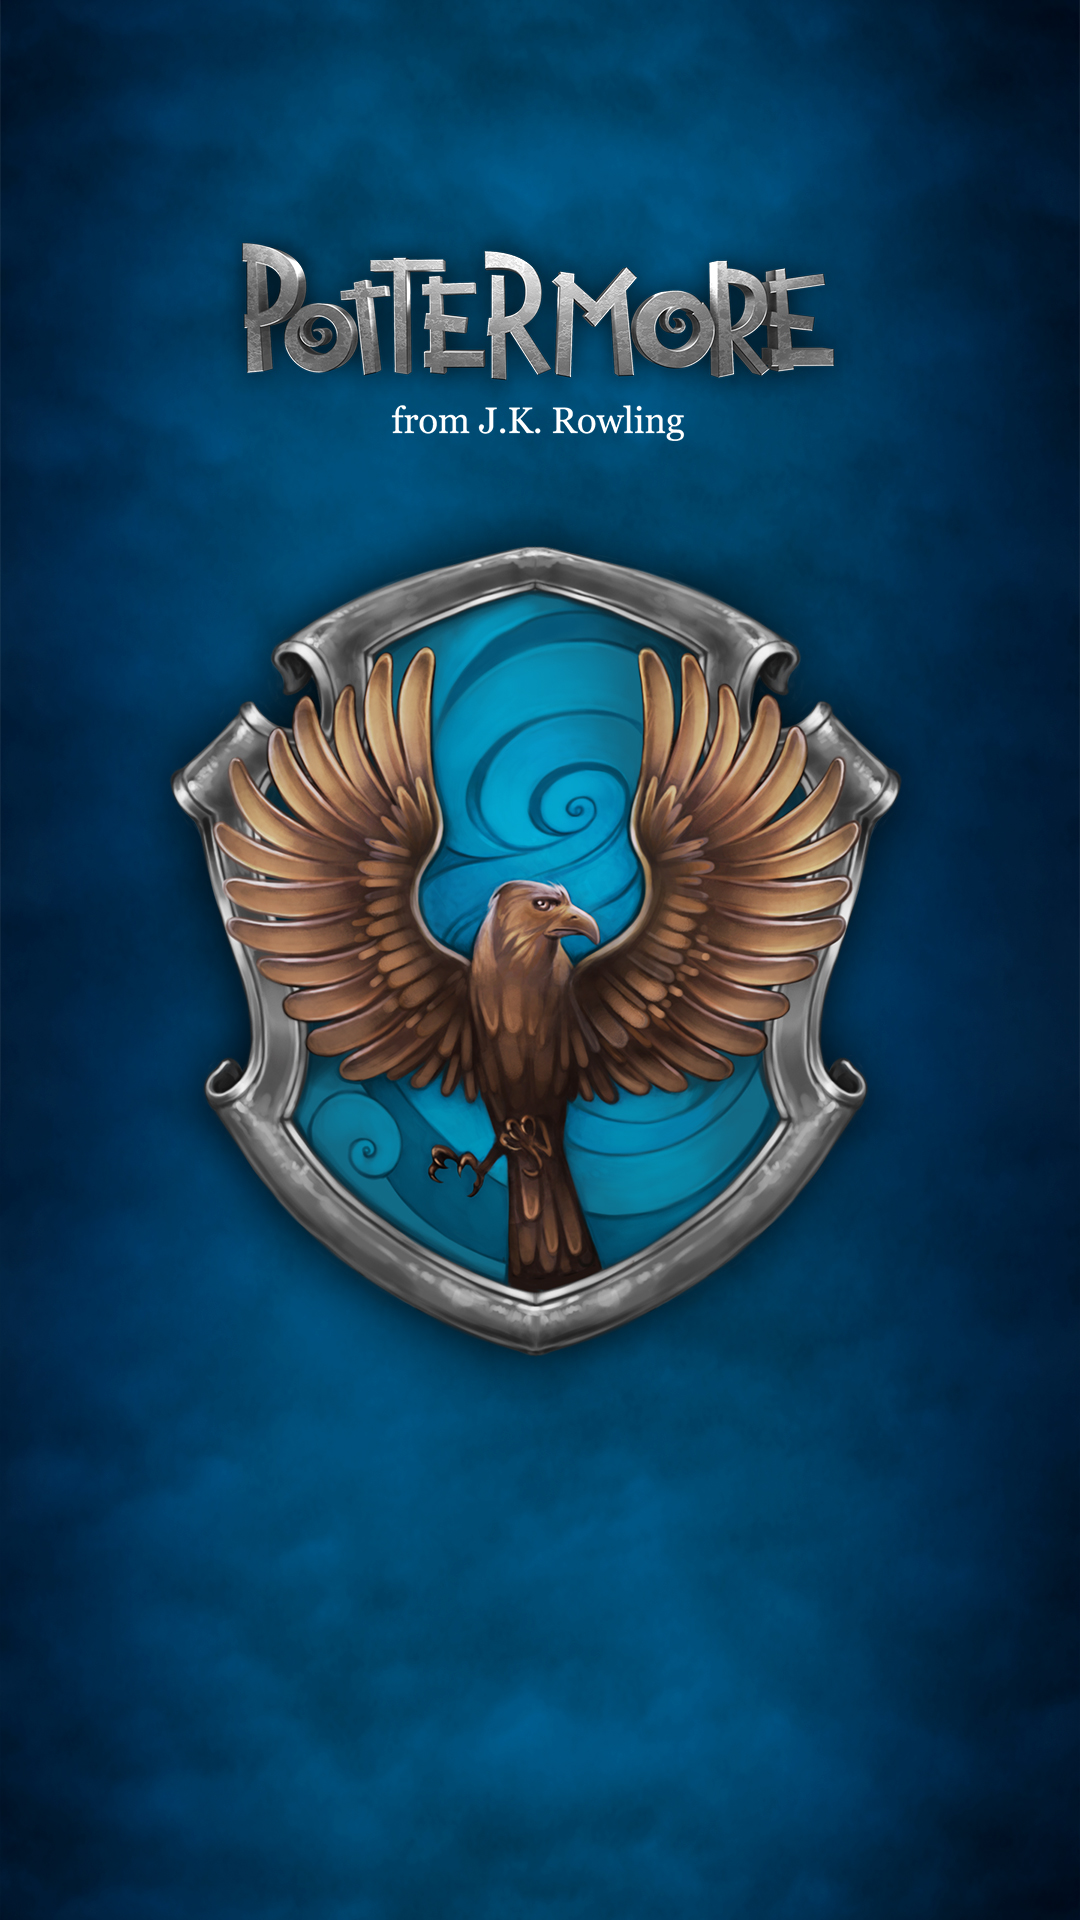 hogwarts ravenclaw wallpaper for mac - photo #13